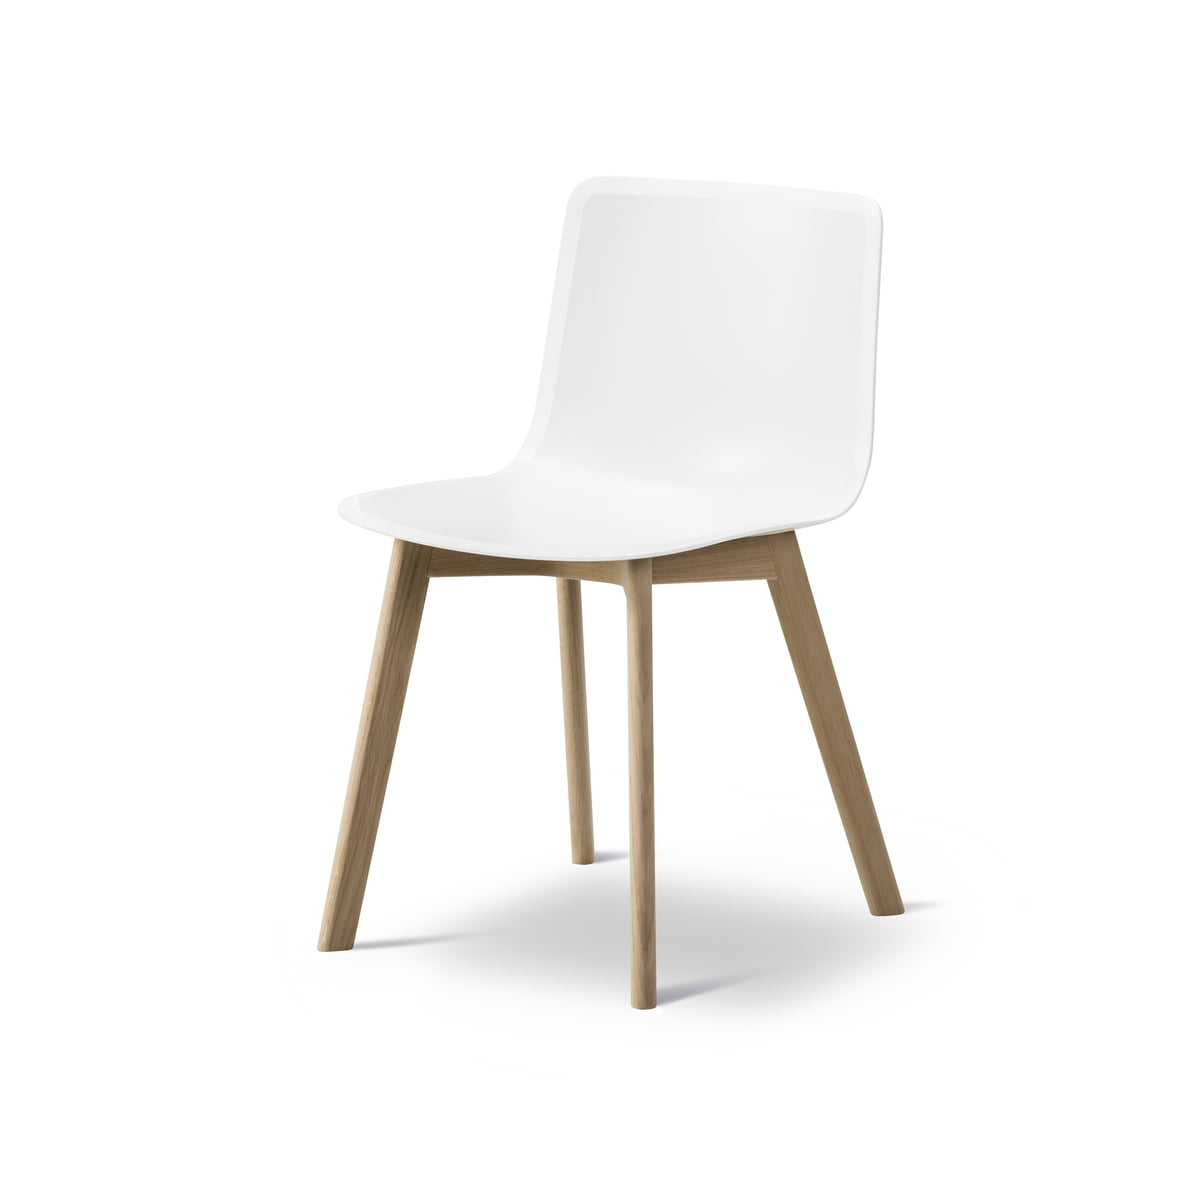 pp chair company wagon wheel chairs pato wood base stuhl von fredericia connox